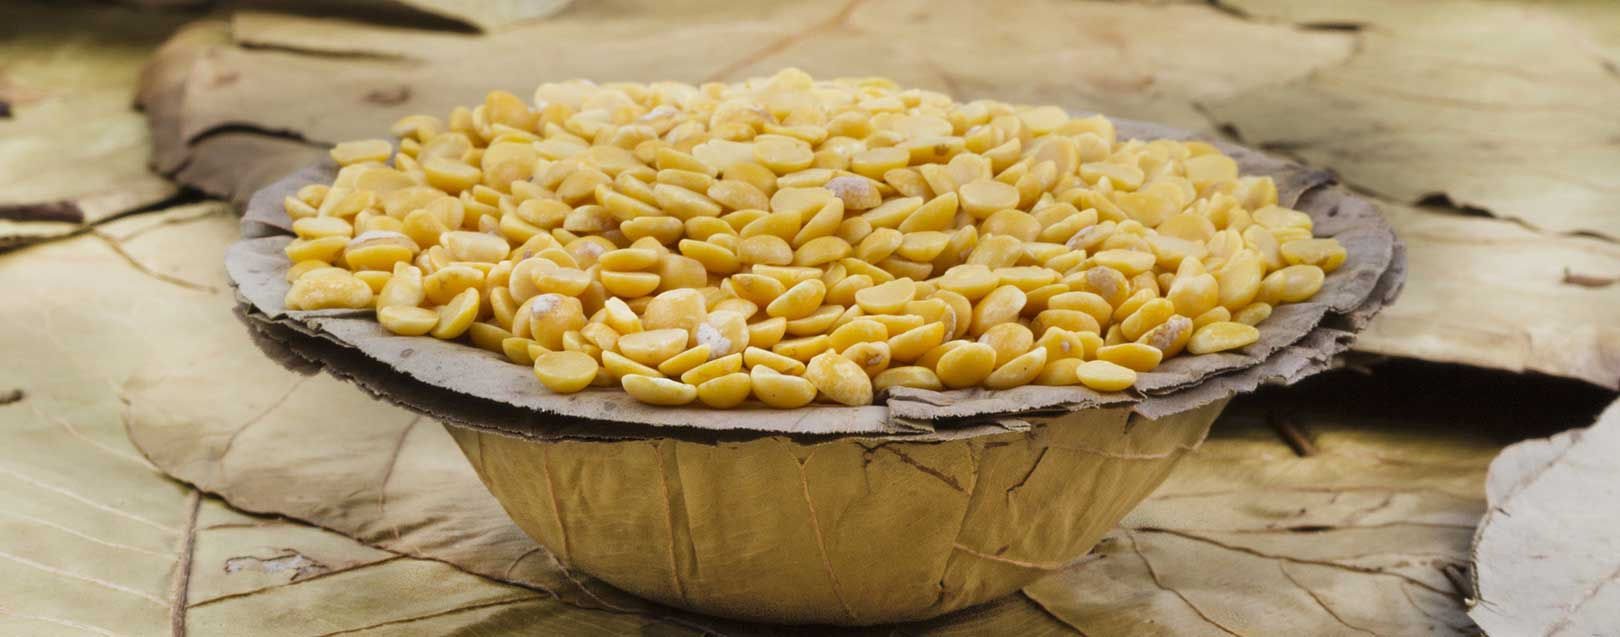 Govt imposes 10% import duty on tur dal, wheat